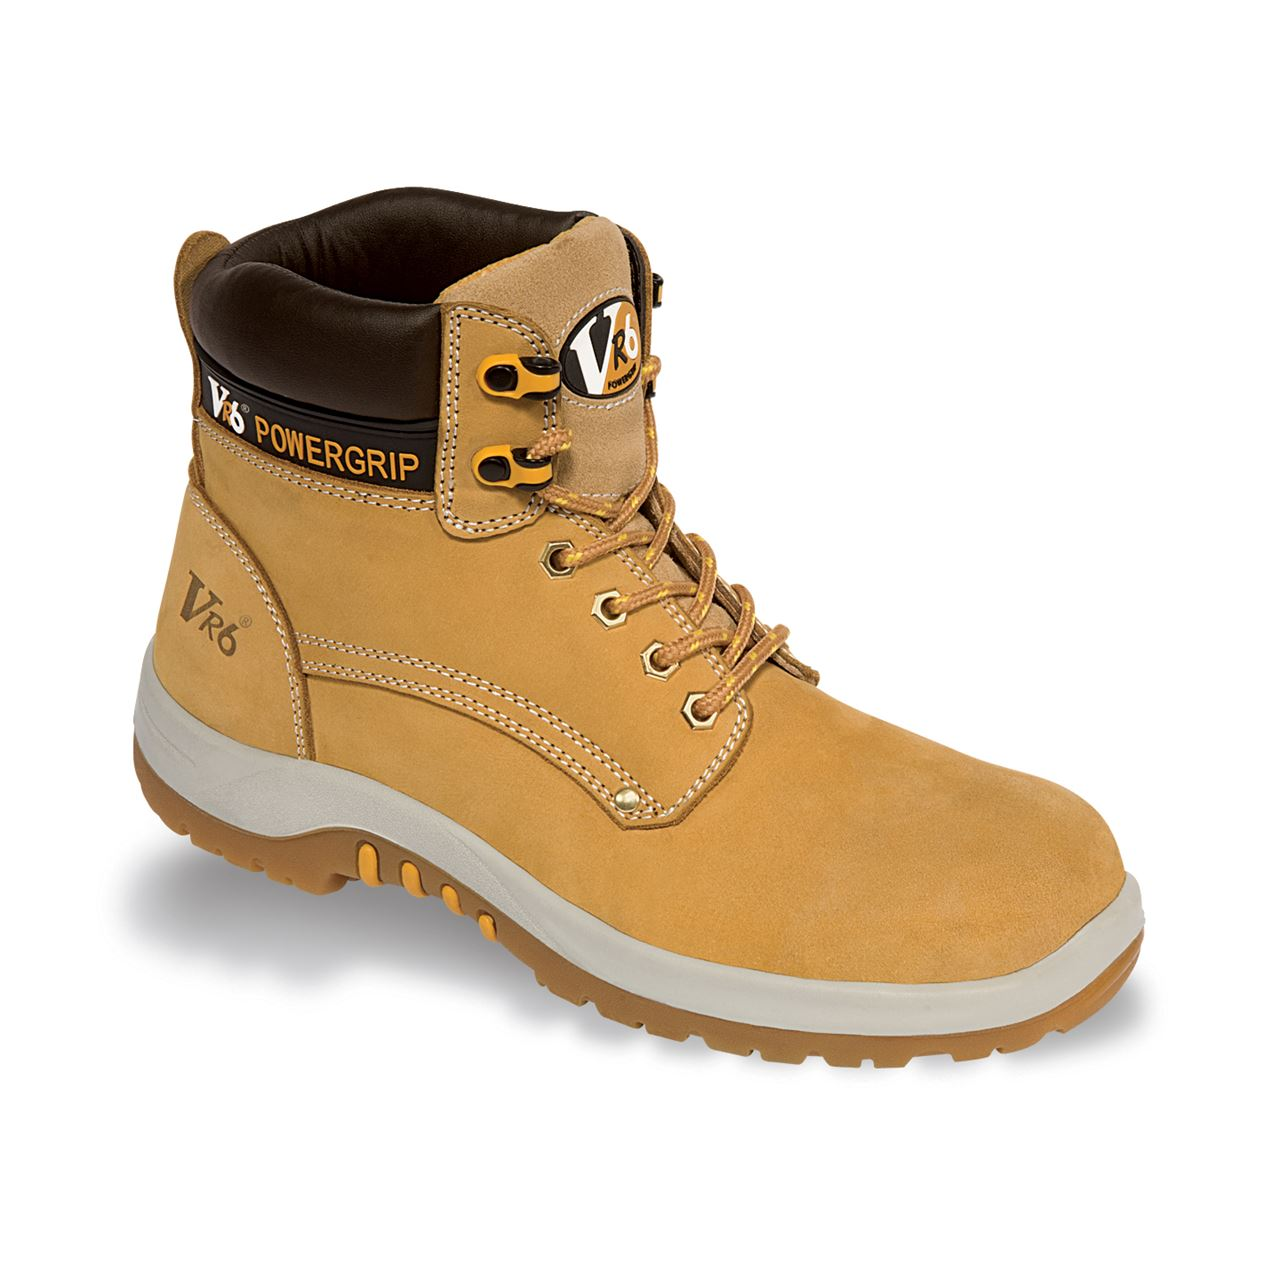 V12 Puma Unisex Honey Nubuck Safety Boot VR602 Leather Steel Midsole S3